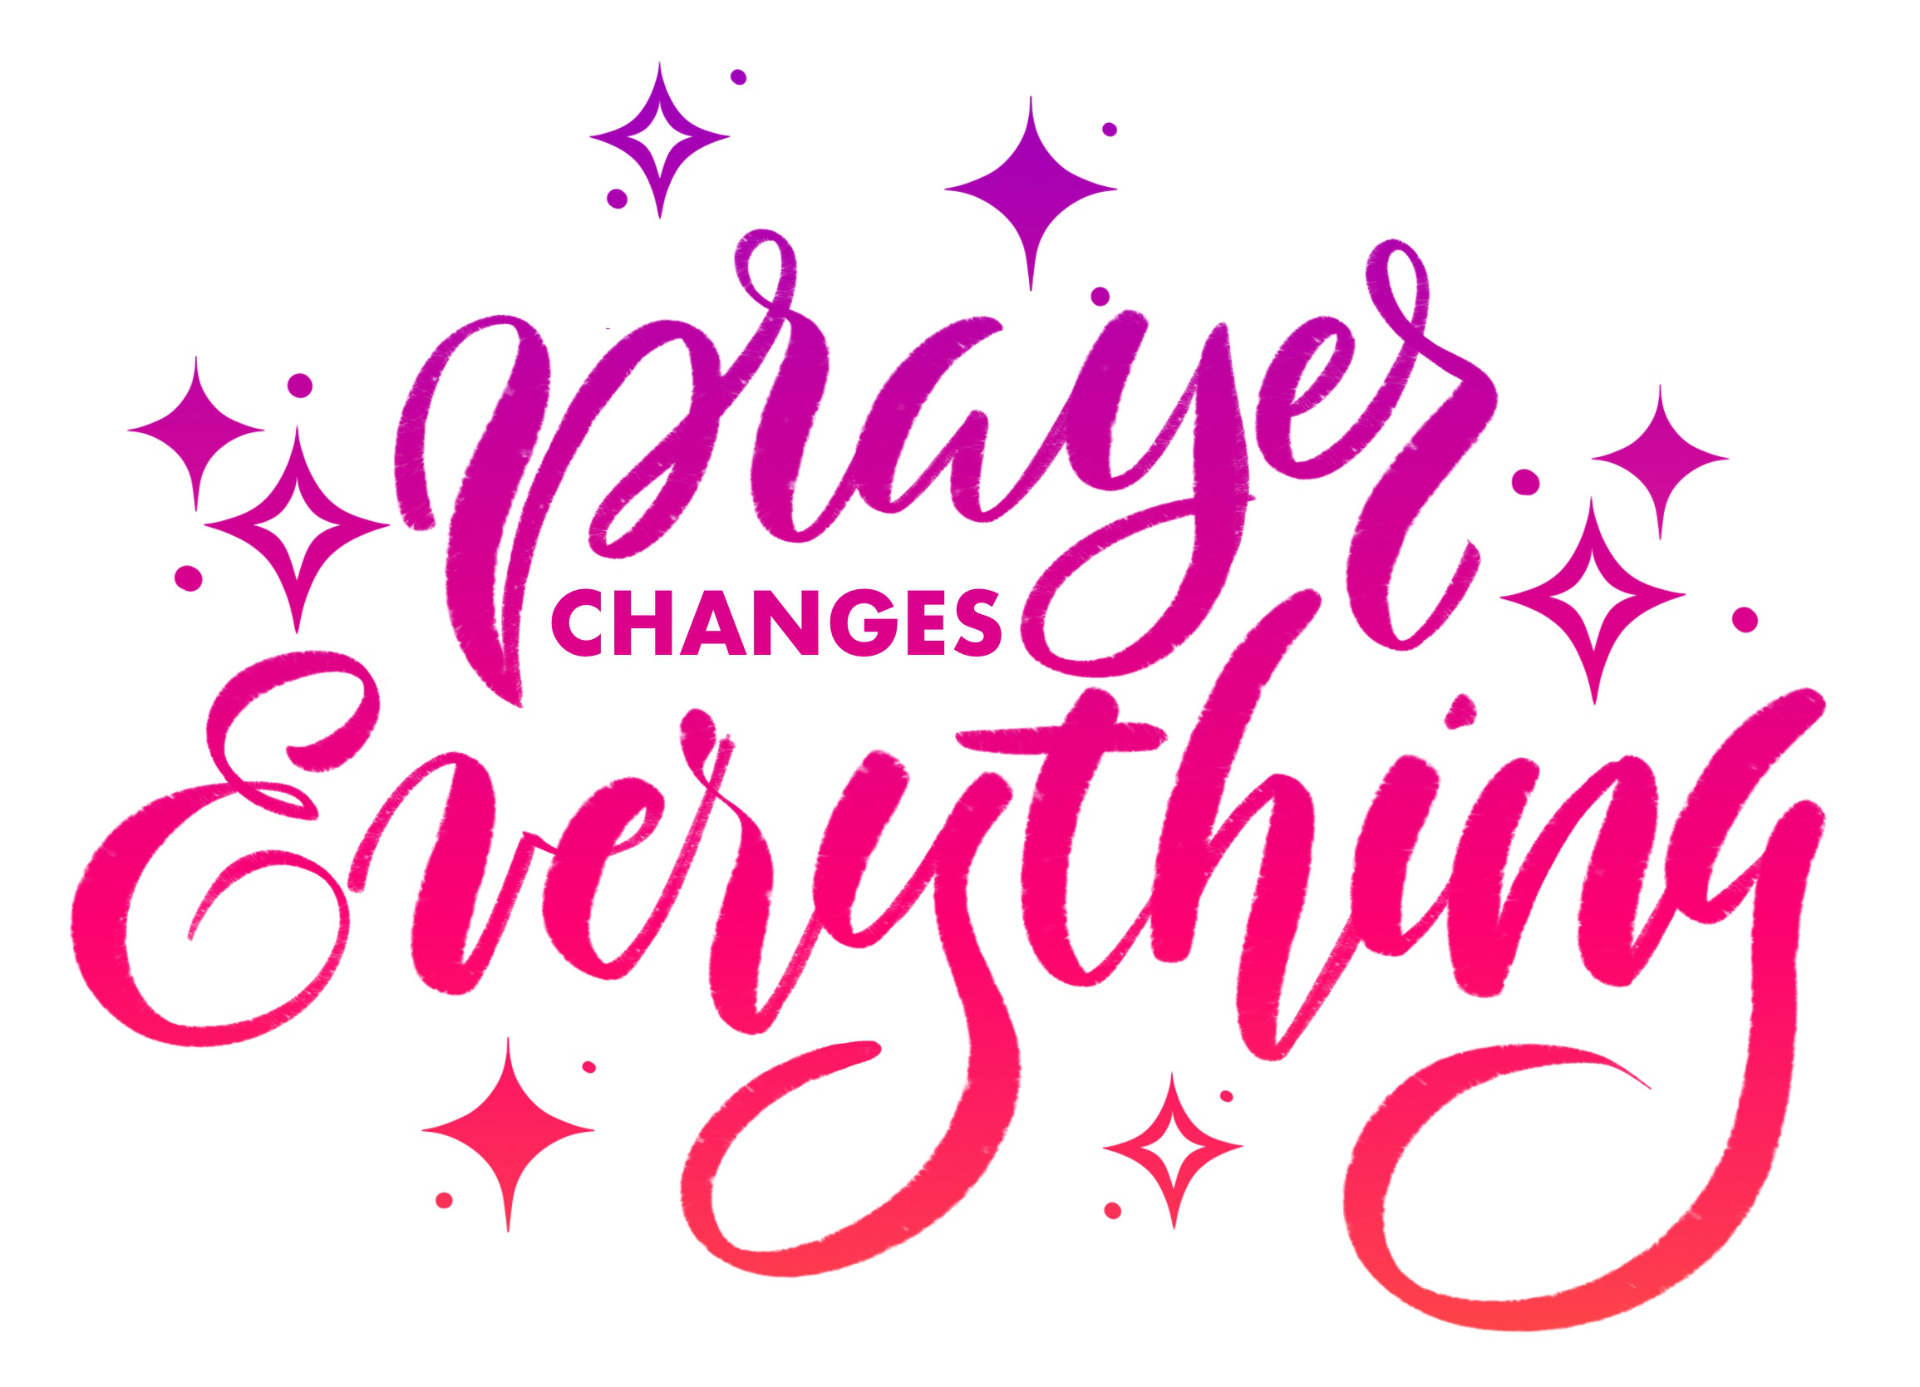 Prayer changes everything text overlay